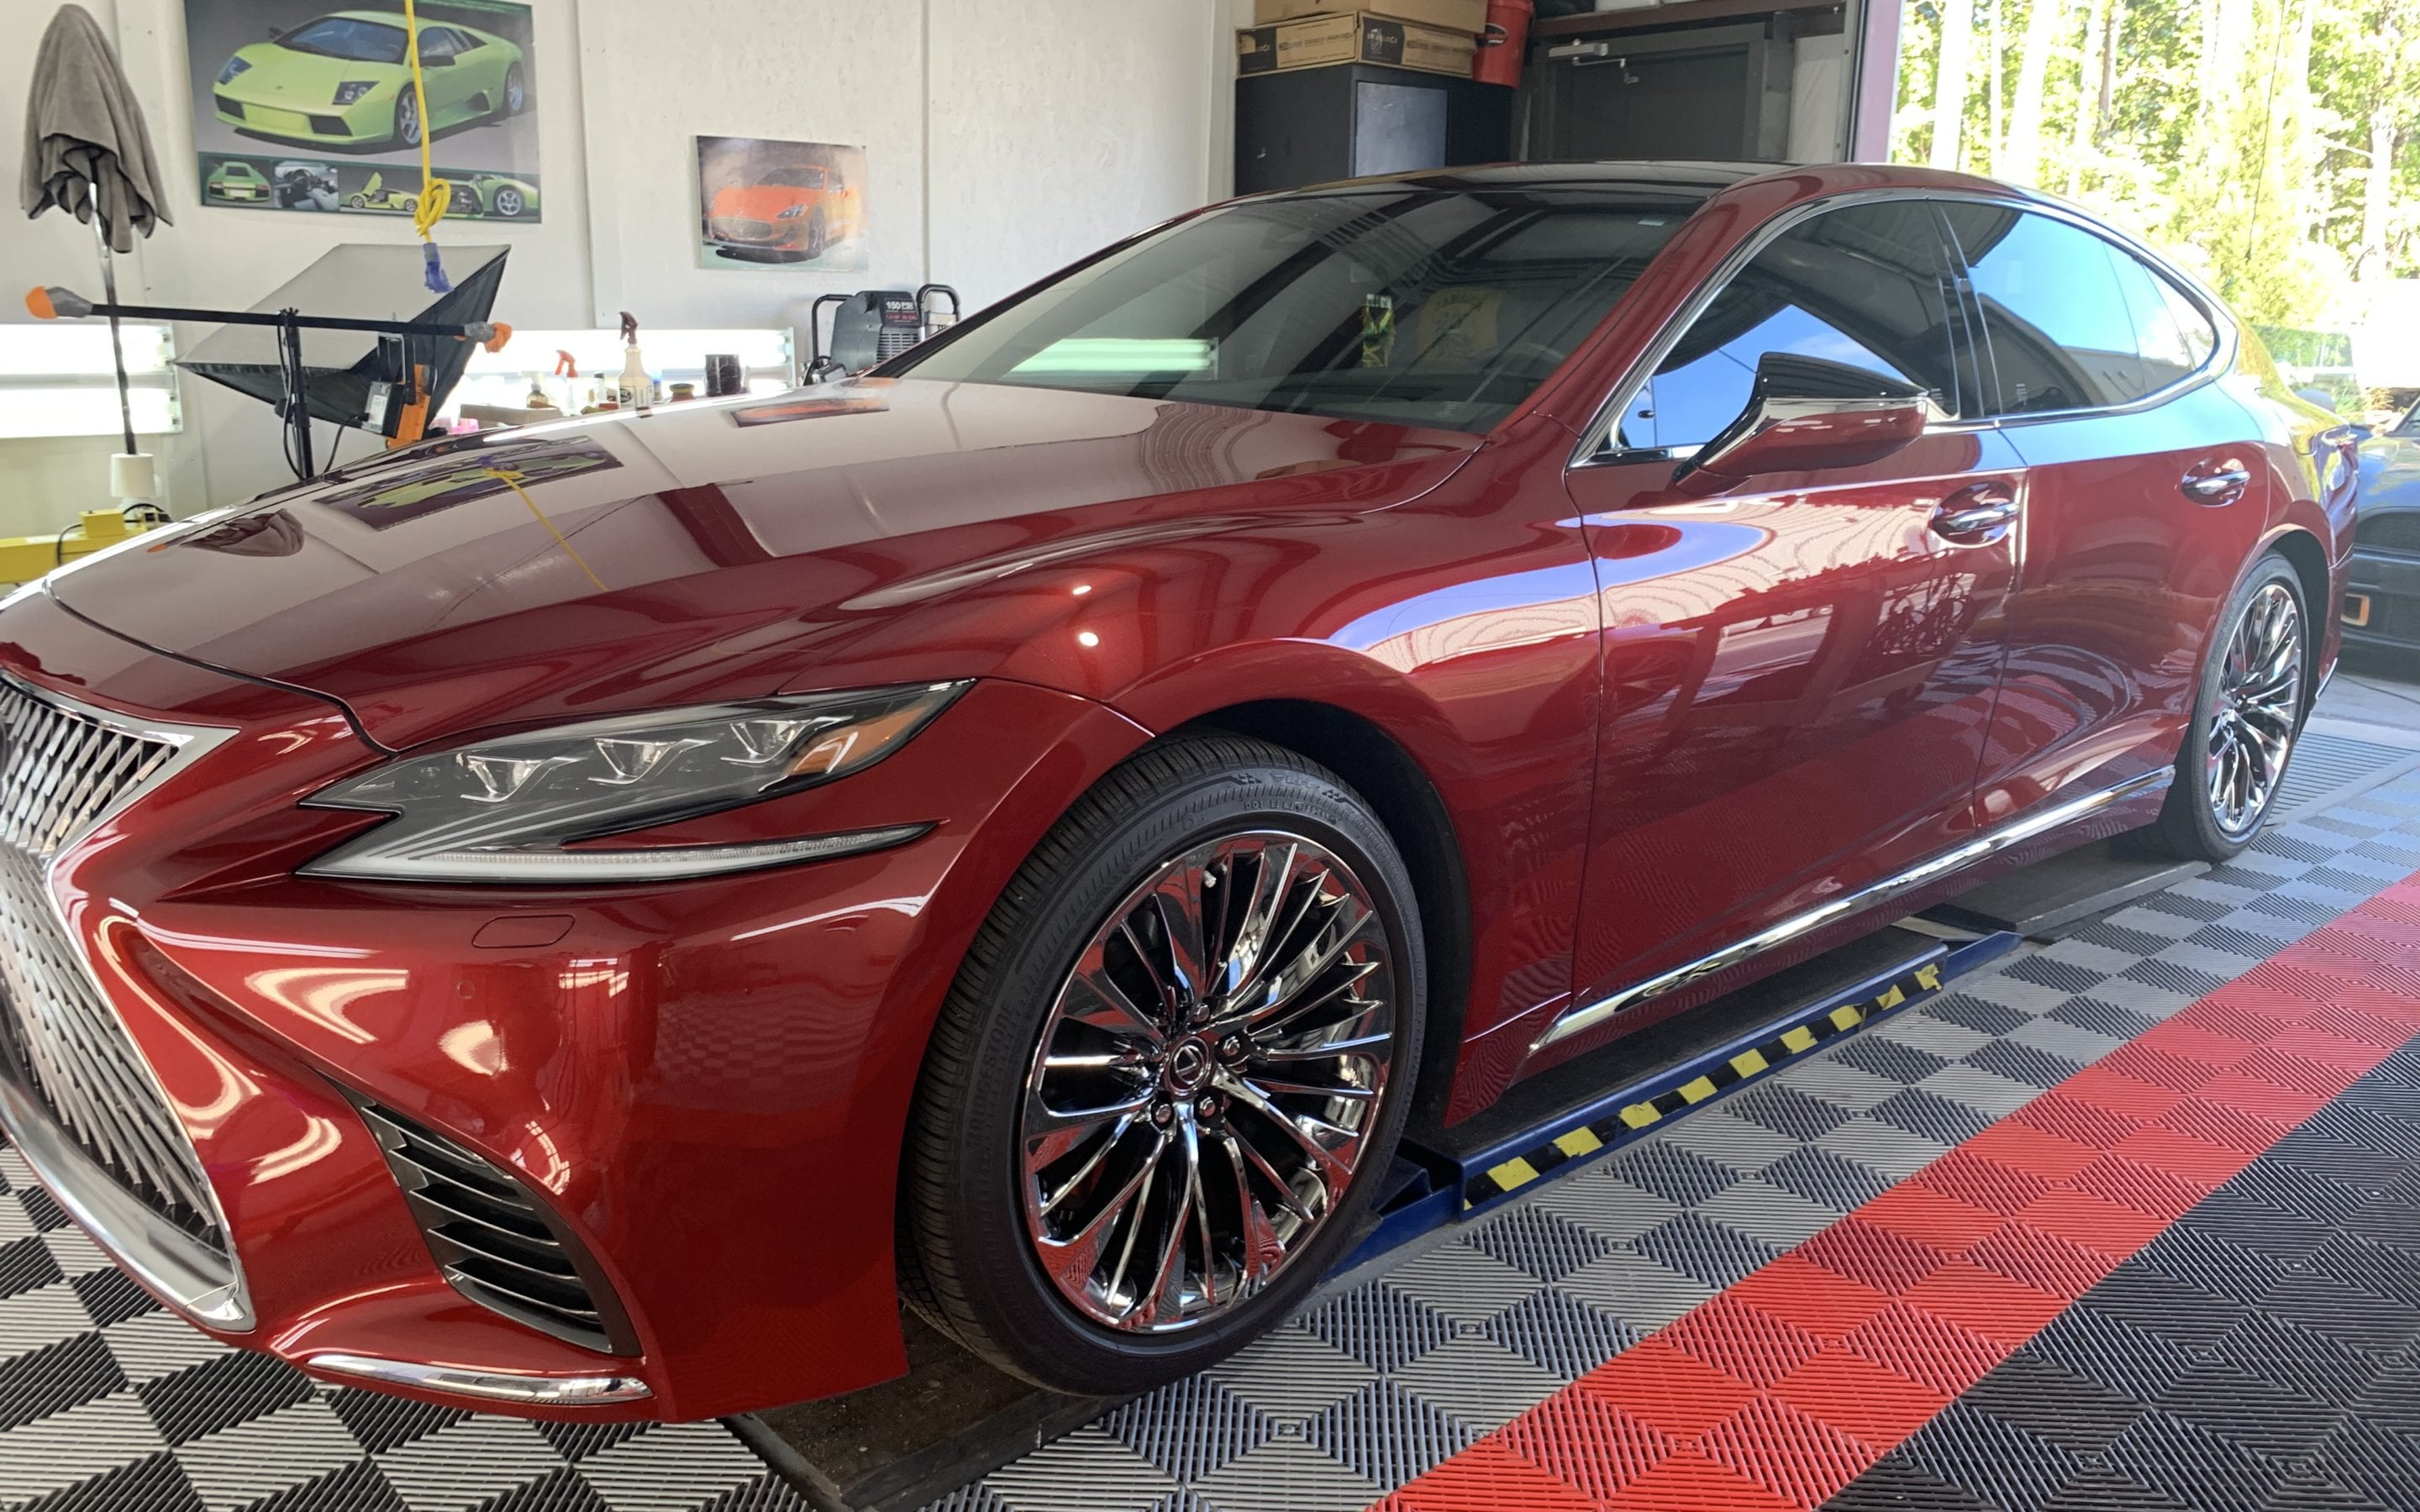 Ceramic Coating of a 2019 Lexus LS